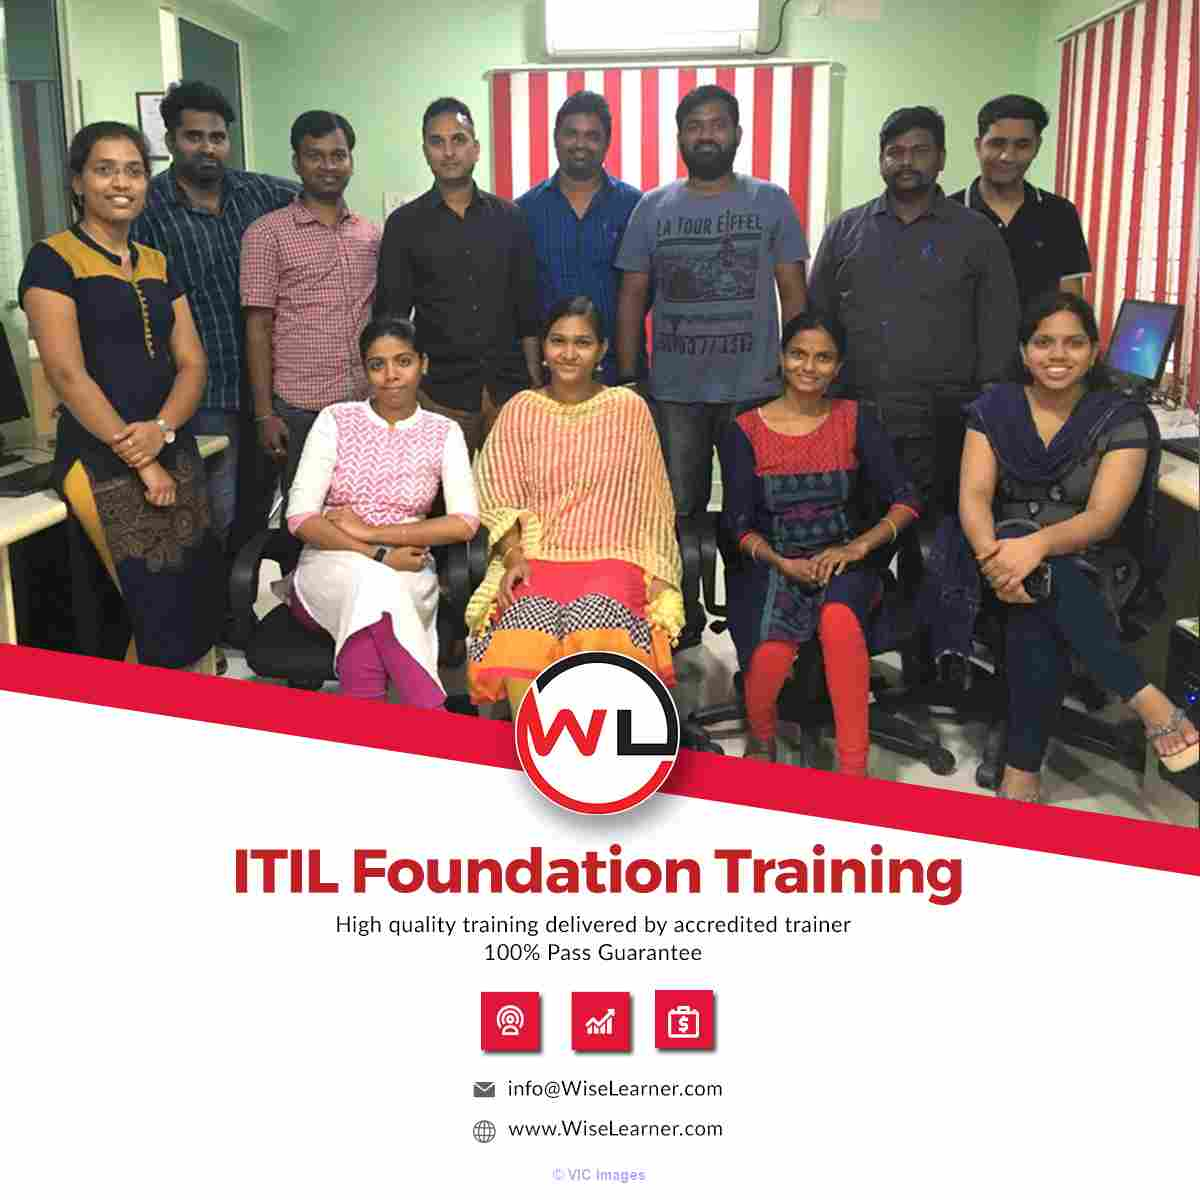 ITIL Foundation Training and Certification Program calgary